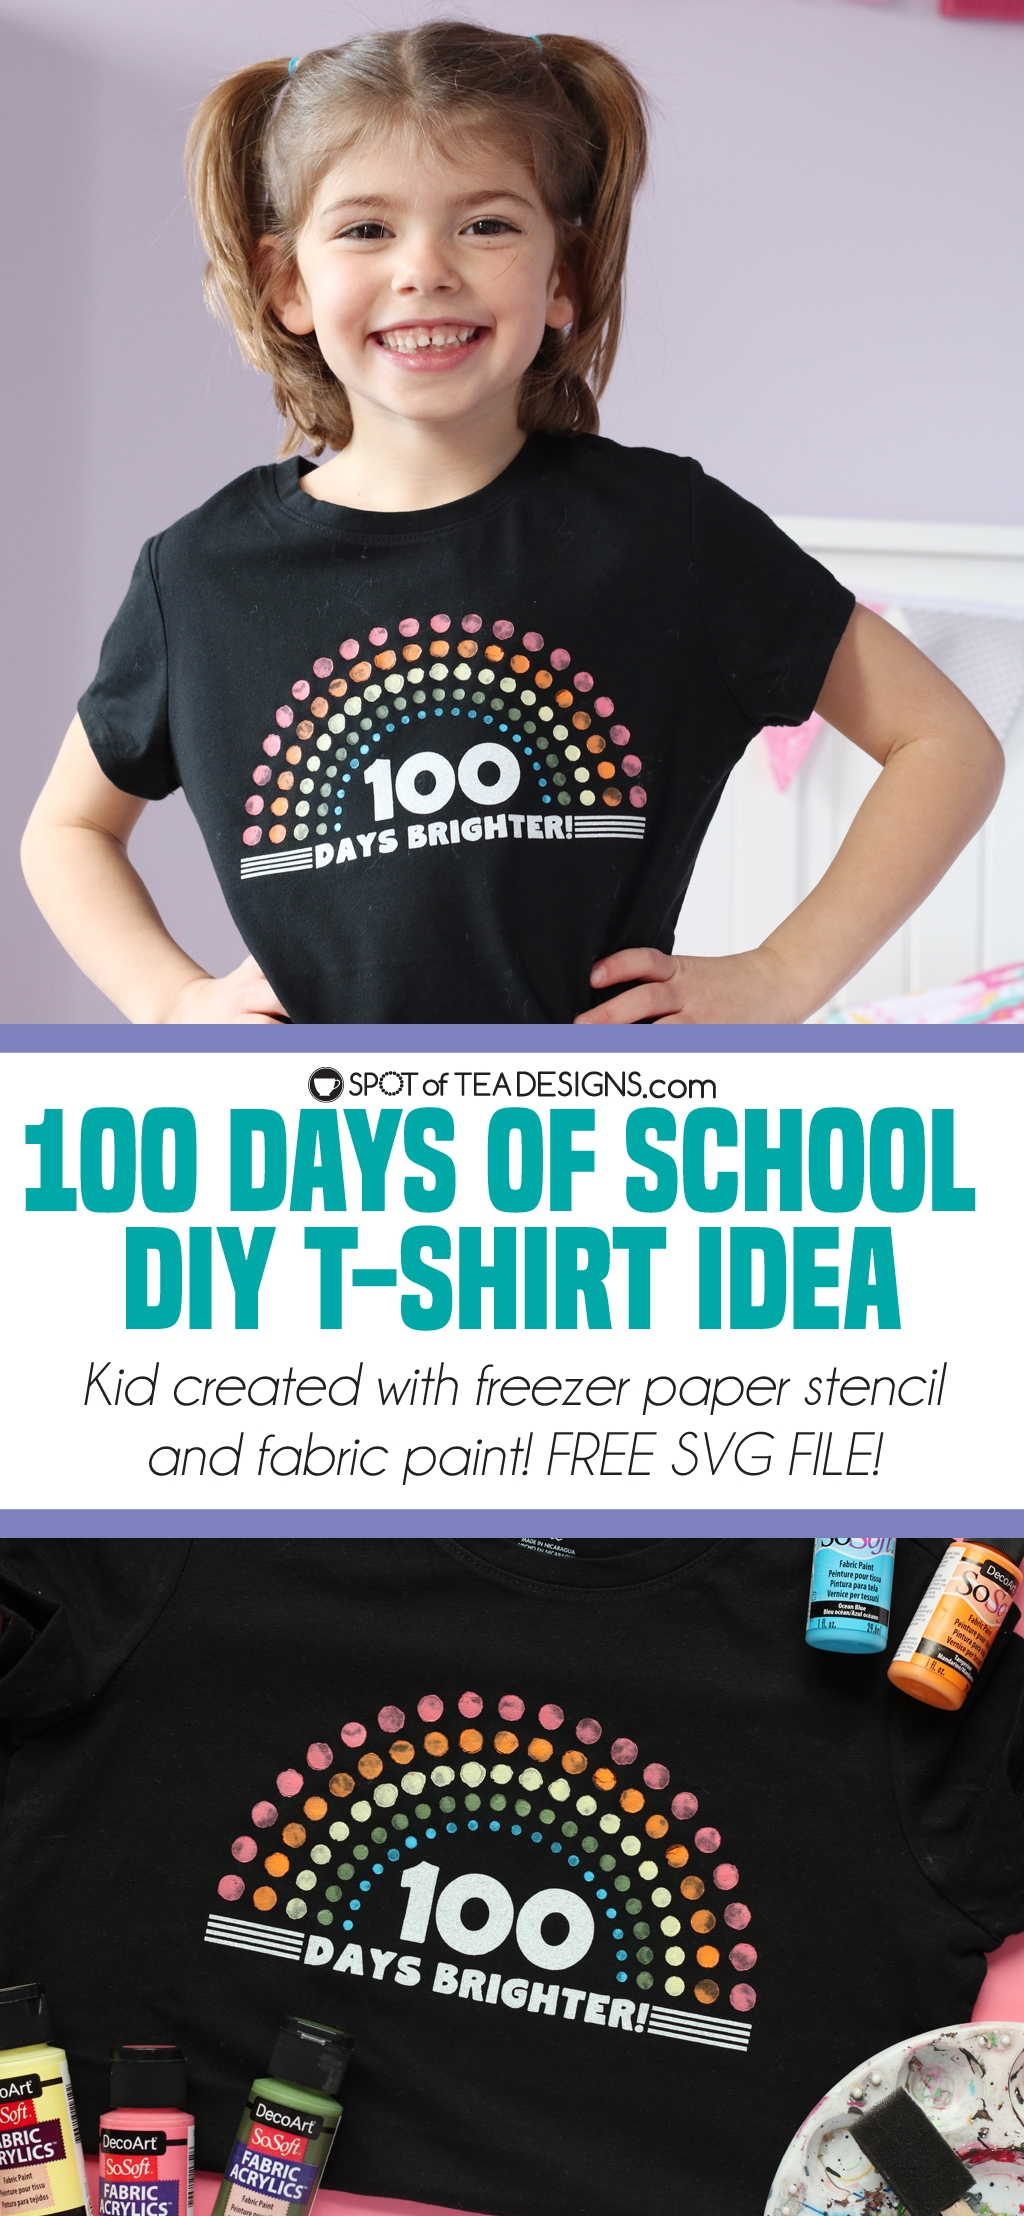 small resolution of 100 Days of School T-shirt   100 Days Brighter   Spot of Tea Designs